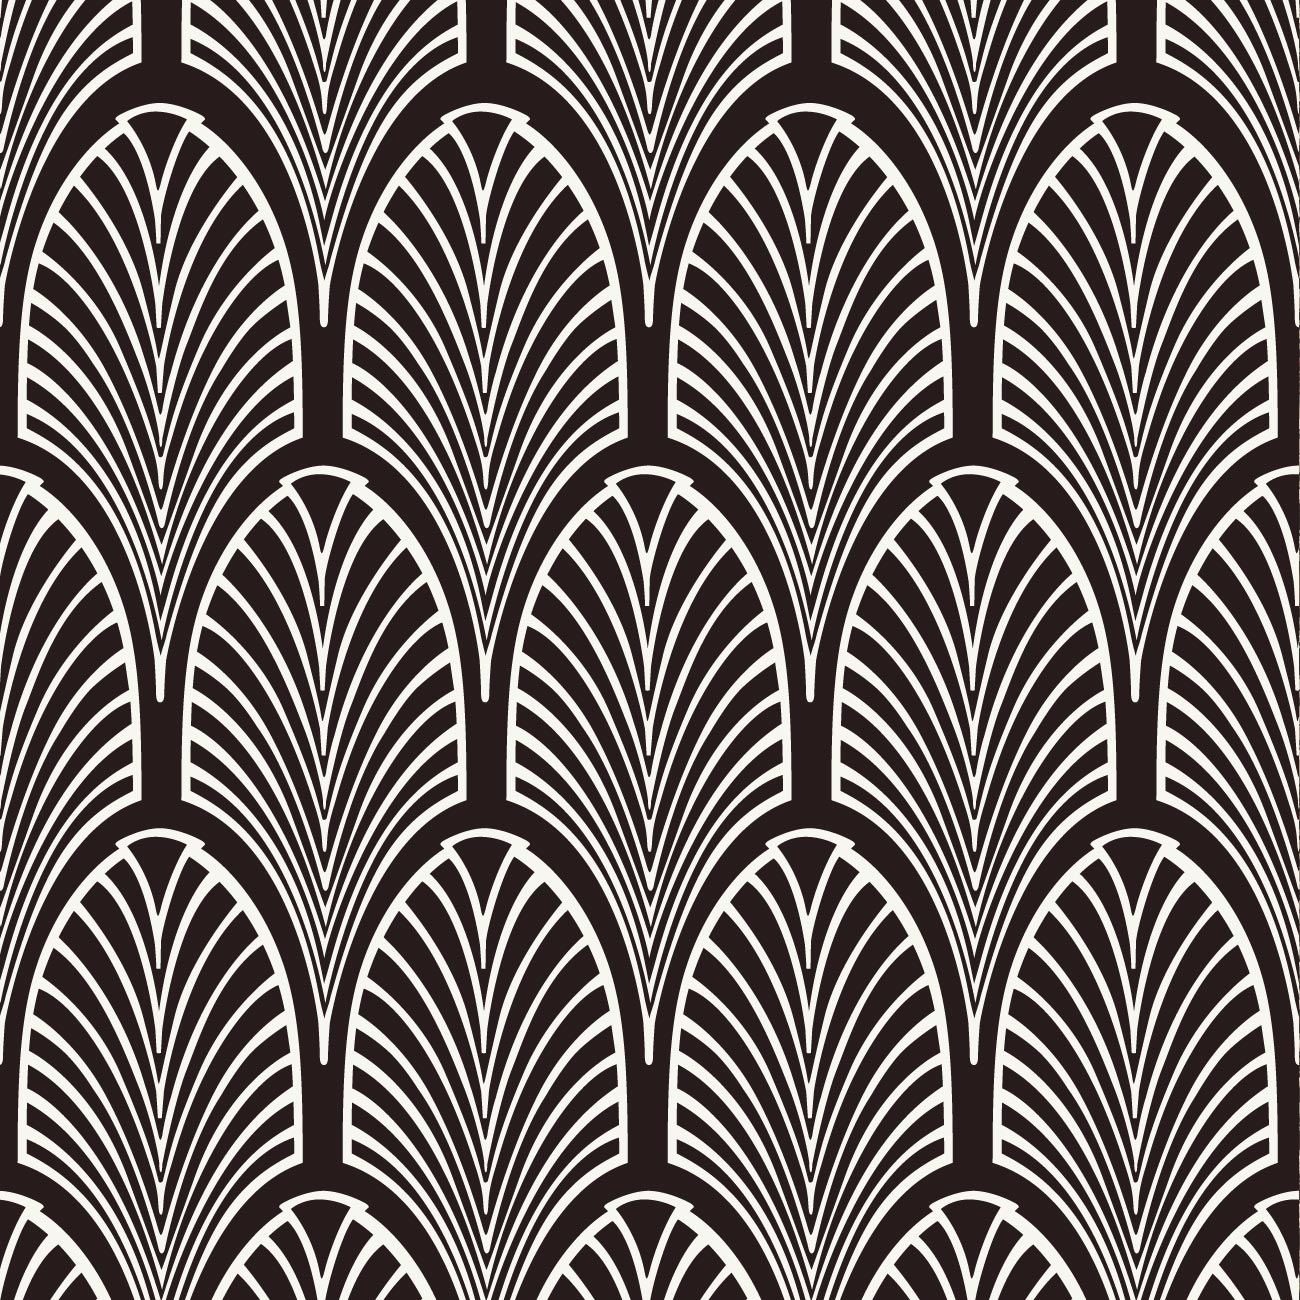 art deco wallpaper uk wallpapersafari. Black Bedroom Furniture Sets. Home Design Ideas